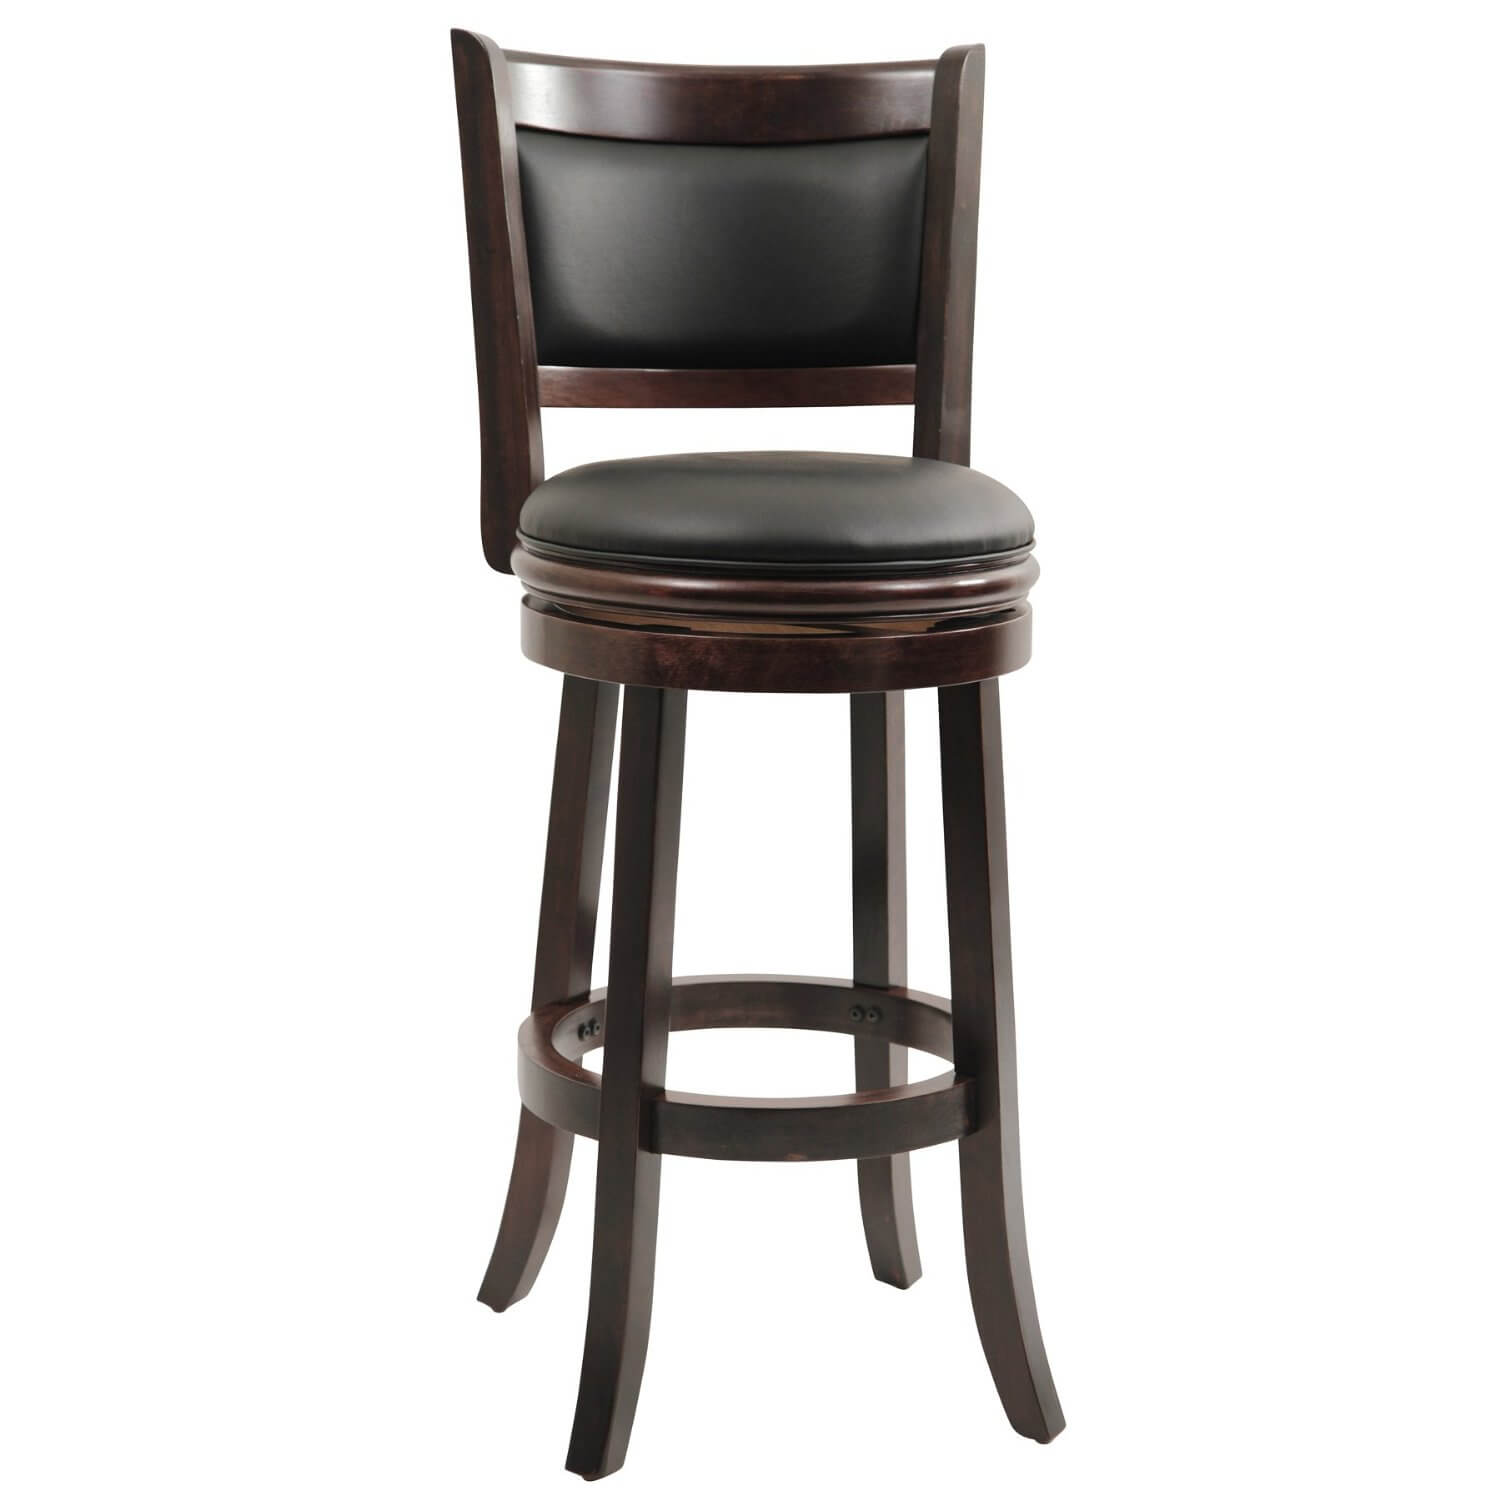 This is a 4-legged swivel stool with wood frame and upholstered seat and back.